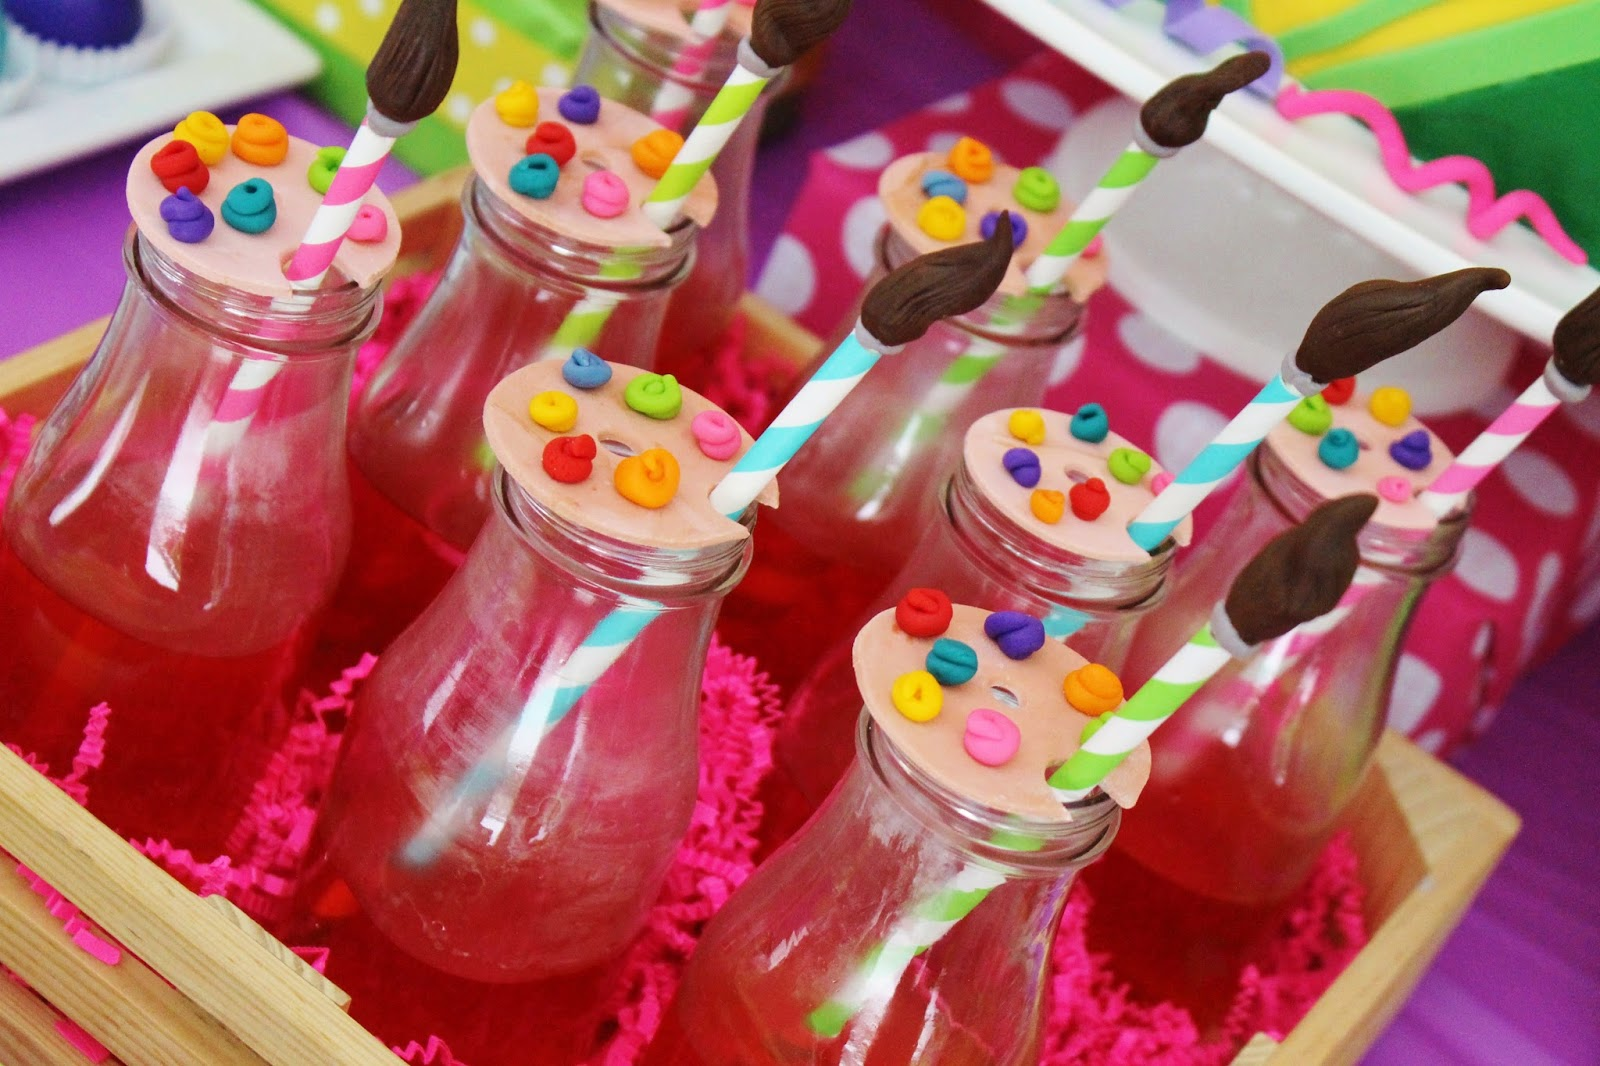 Arts and crafts party ideas - Arts And Crafts Party Ideas 18